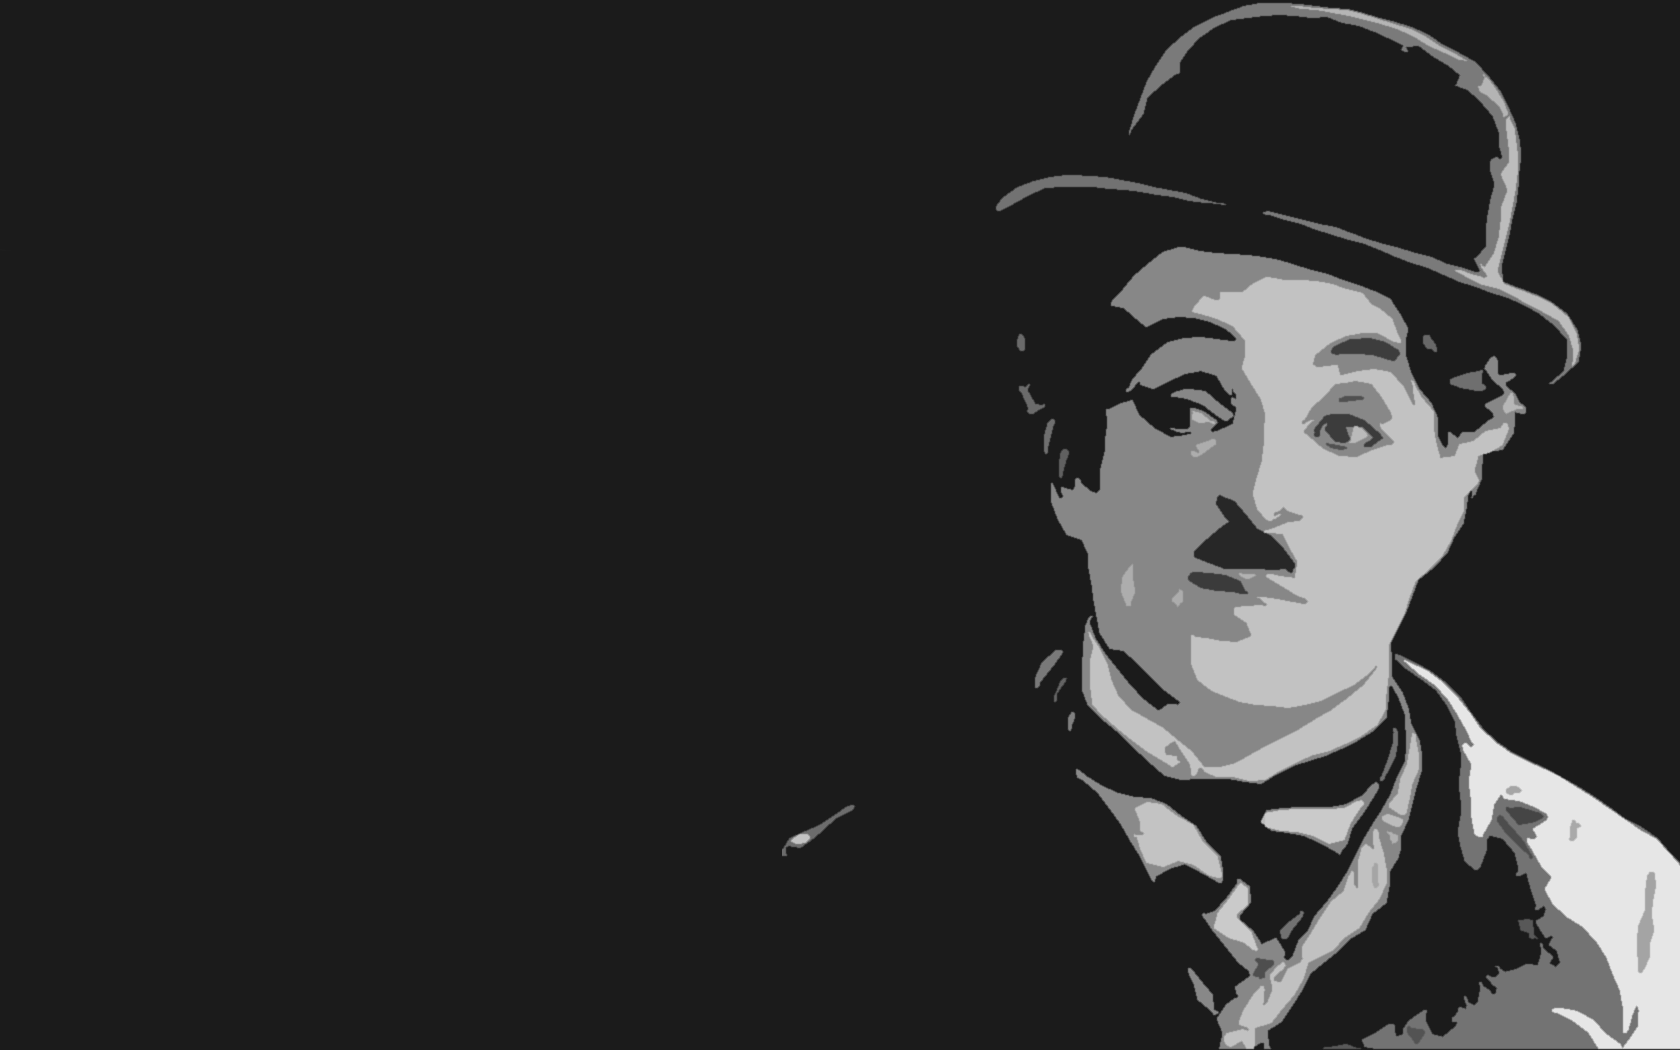 charles_chaplin_by_artedezigual-d54co2y.png